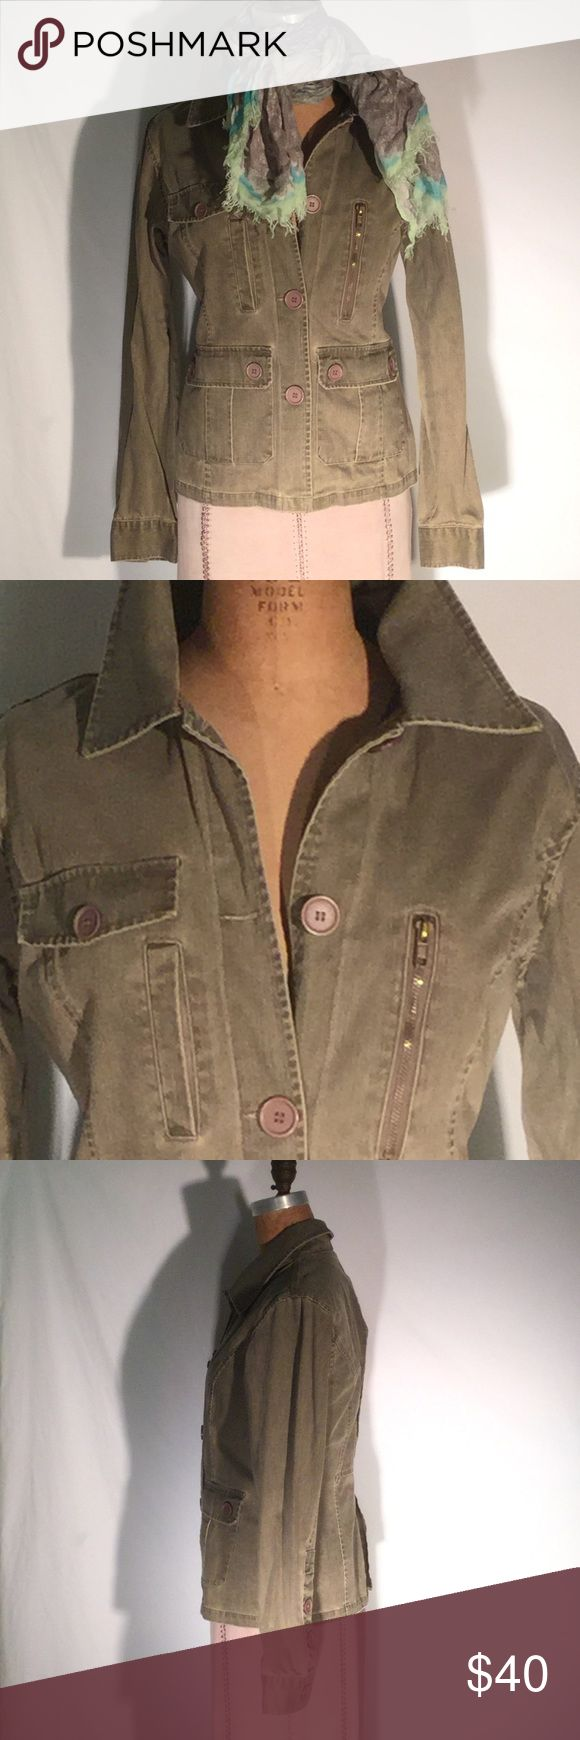 Overdrive safari-style denim jacket-pocket-rich! Overdrive olive green distressed denim safari jacket or similar to a barn jacket, but much more feminine in fit. 4-button front, 2 faux breast pockets w/button flaps, 2 gusseted patch flap pockets on front, 1 vertical welt pocket above that as well as a zip-closure vertical pocket across from it. Back gusset with seam at waist & box pleat vent below. 100% cotton. Size Large. PM647 Overdrive Jackets & Coats Jean Jackets